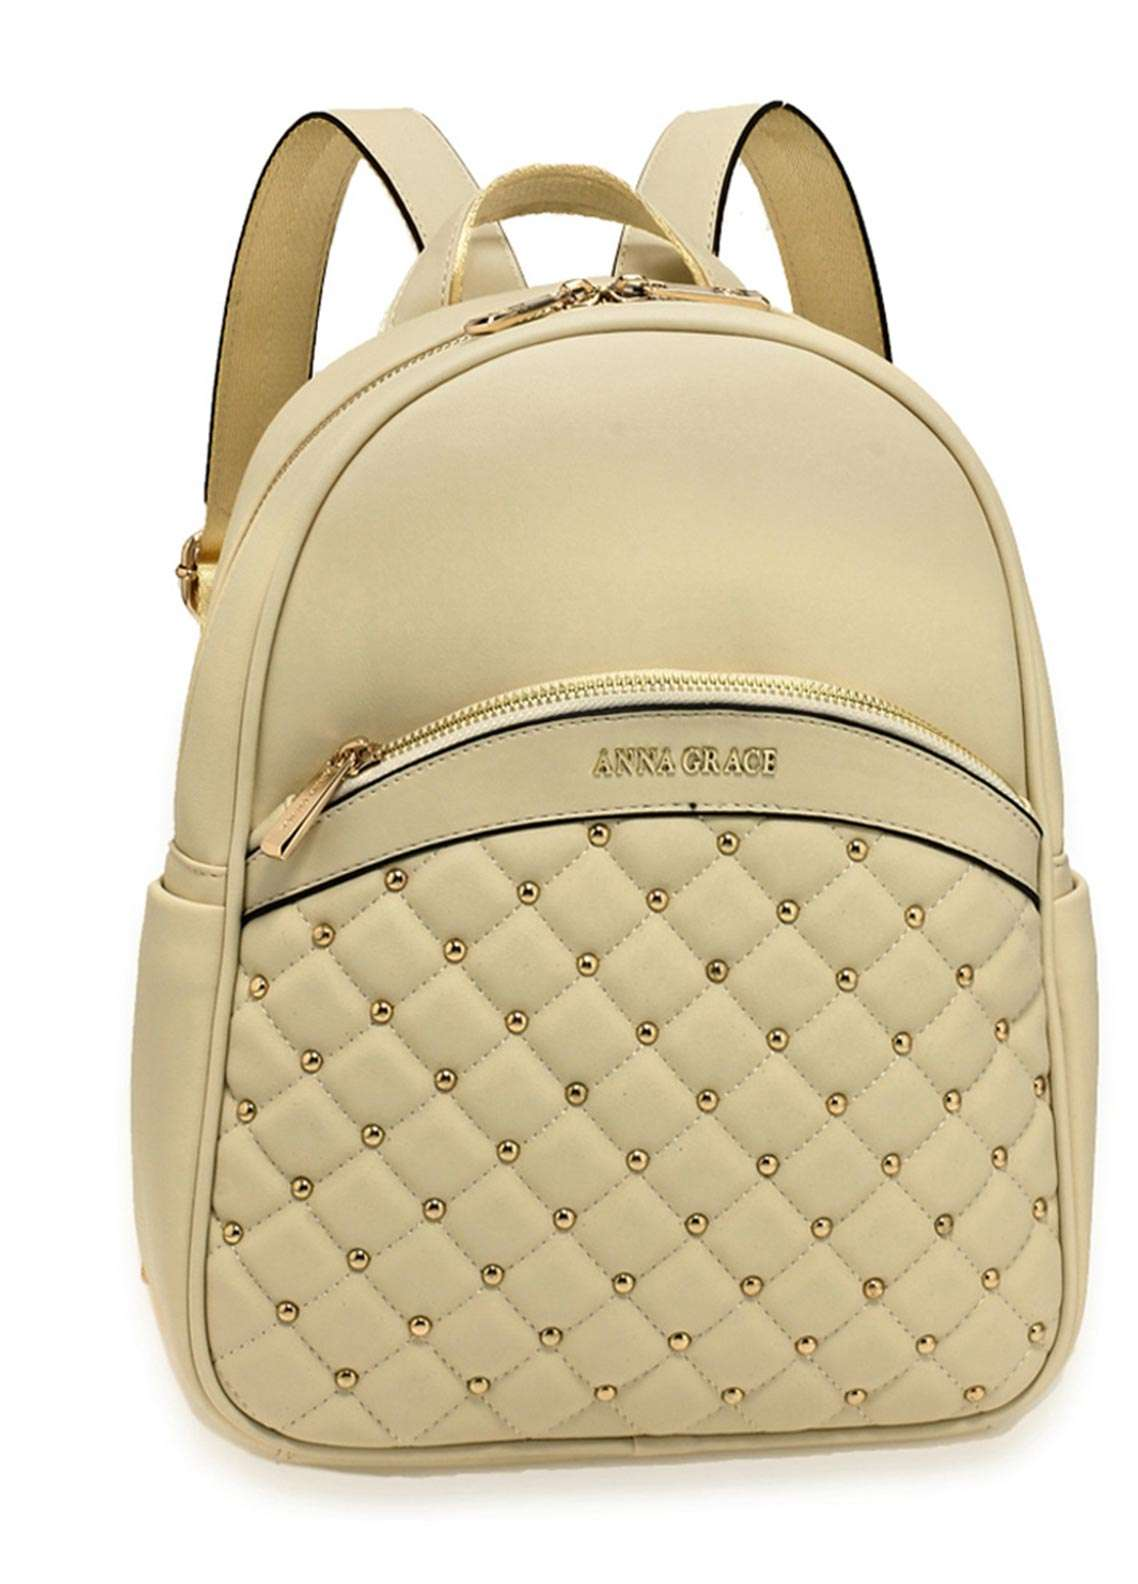 Anna Grace London Faux Leather Backpack Bags  for Women  Ivory with Smooth Texture